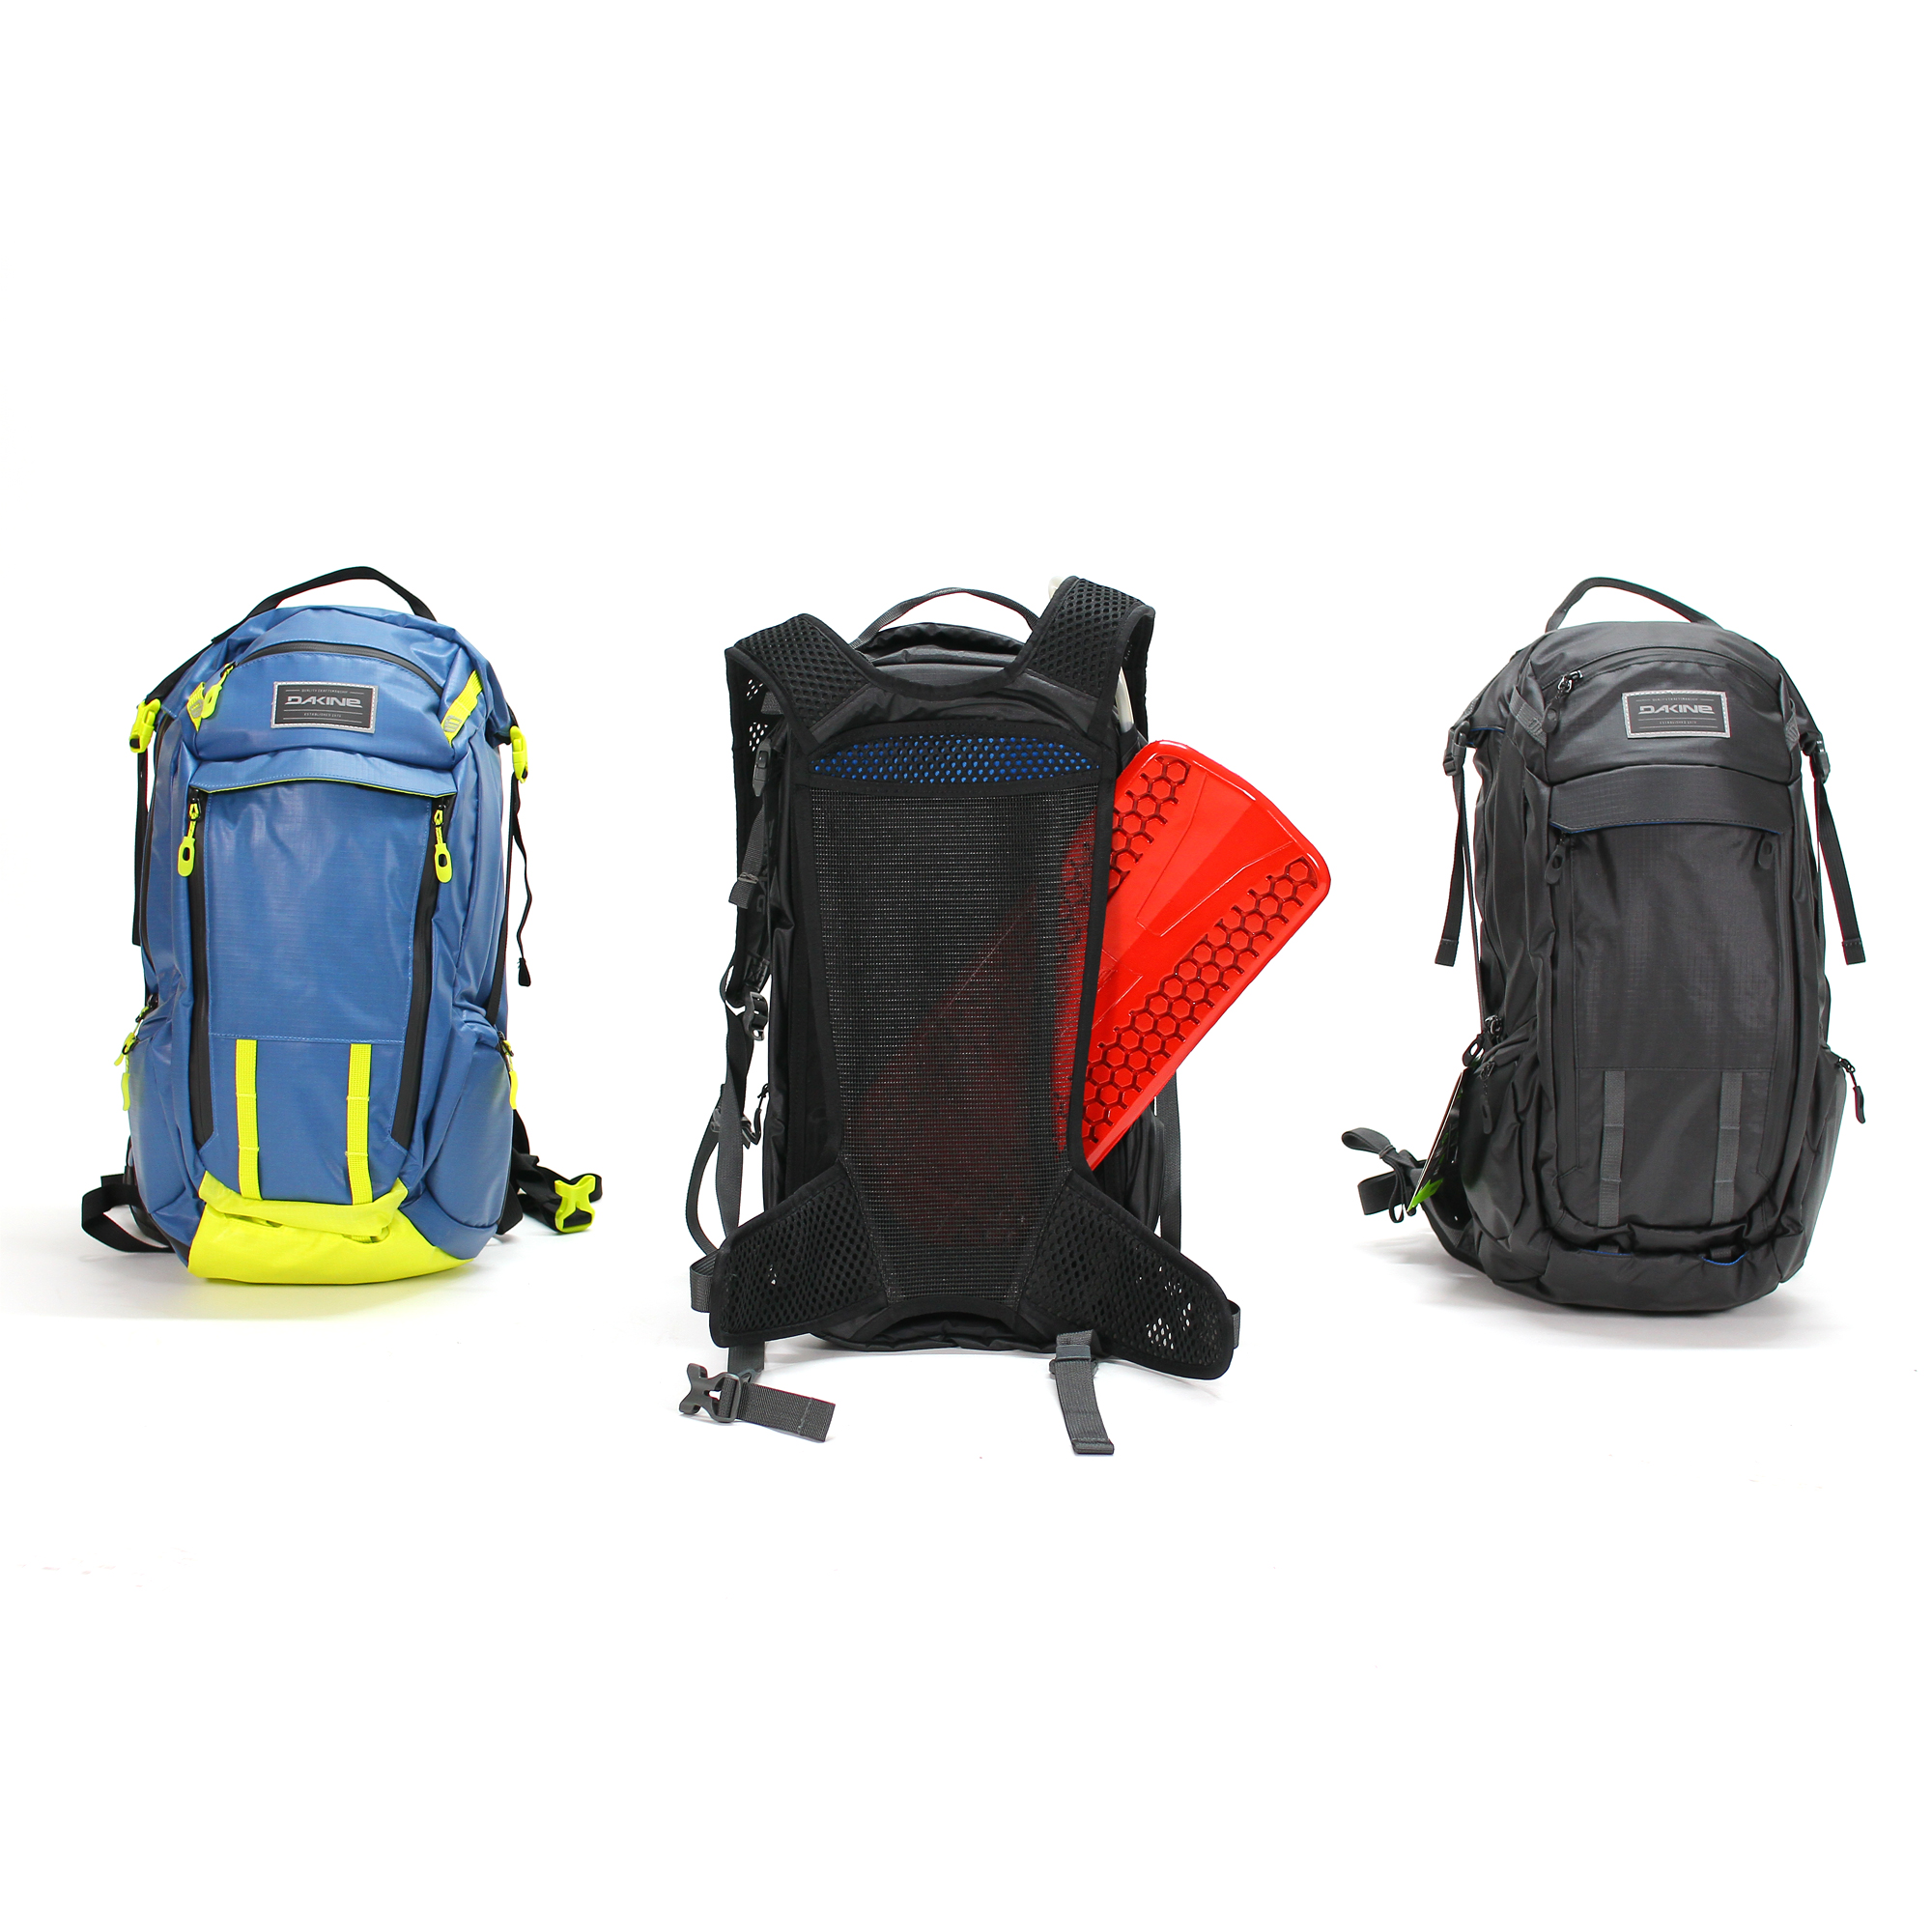 Dakine Seeker backpack up for grabs